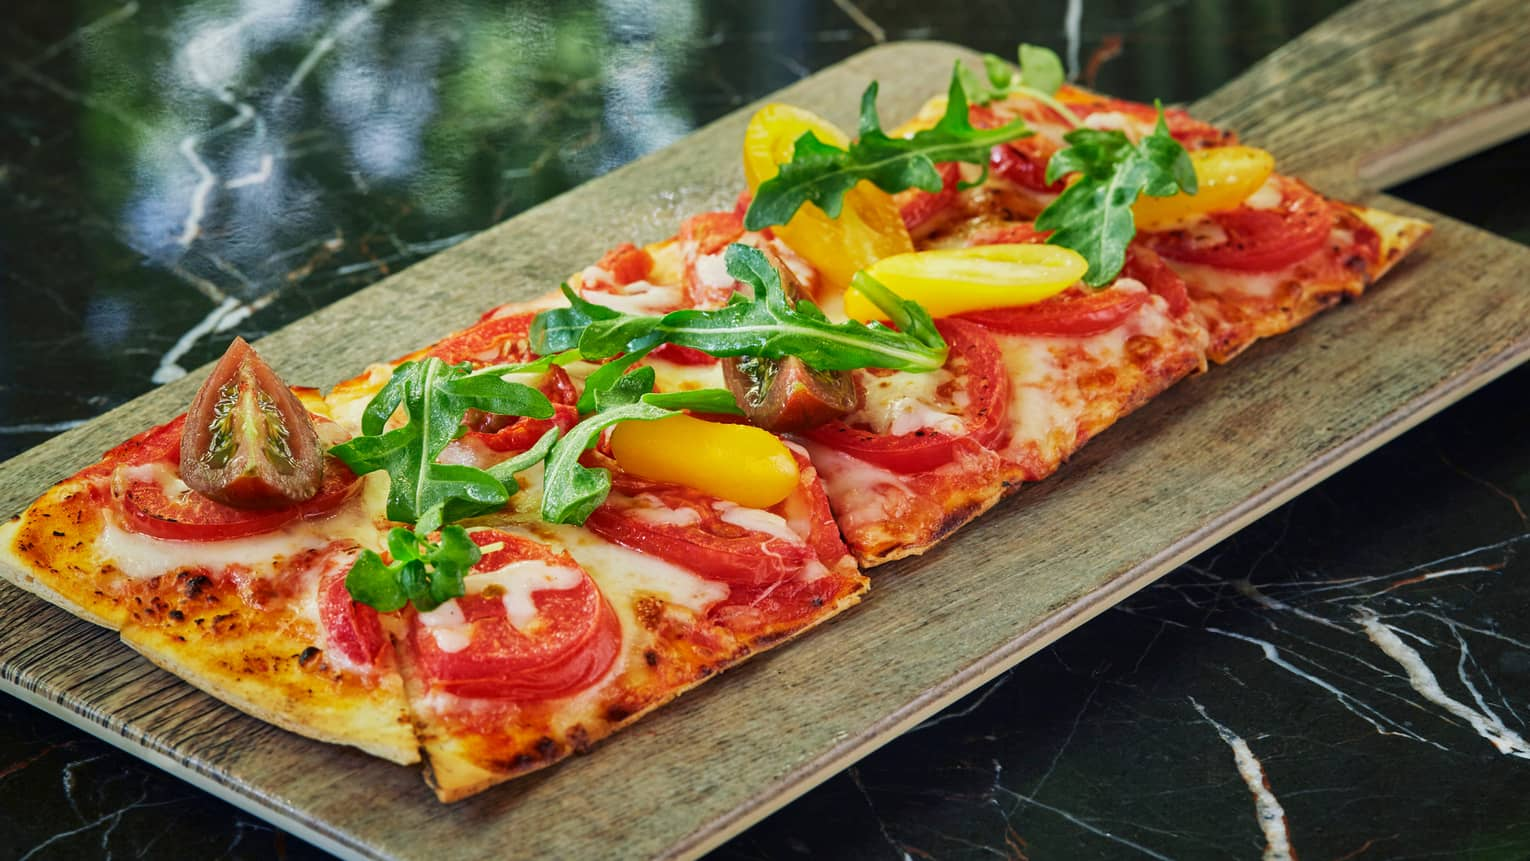 Wood-fired Flatbread pizza topped with tomatoes, fresh greens on wood board